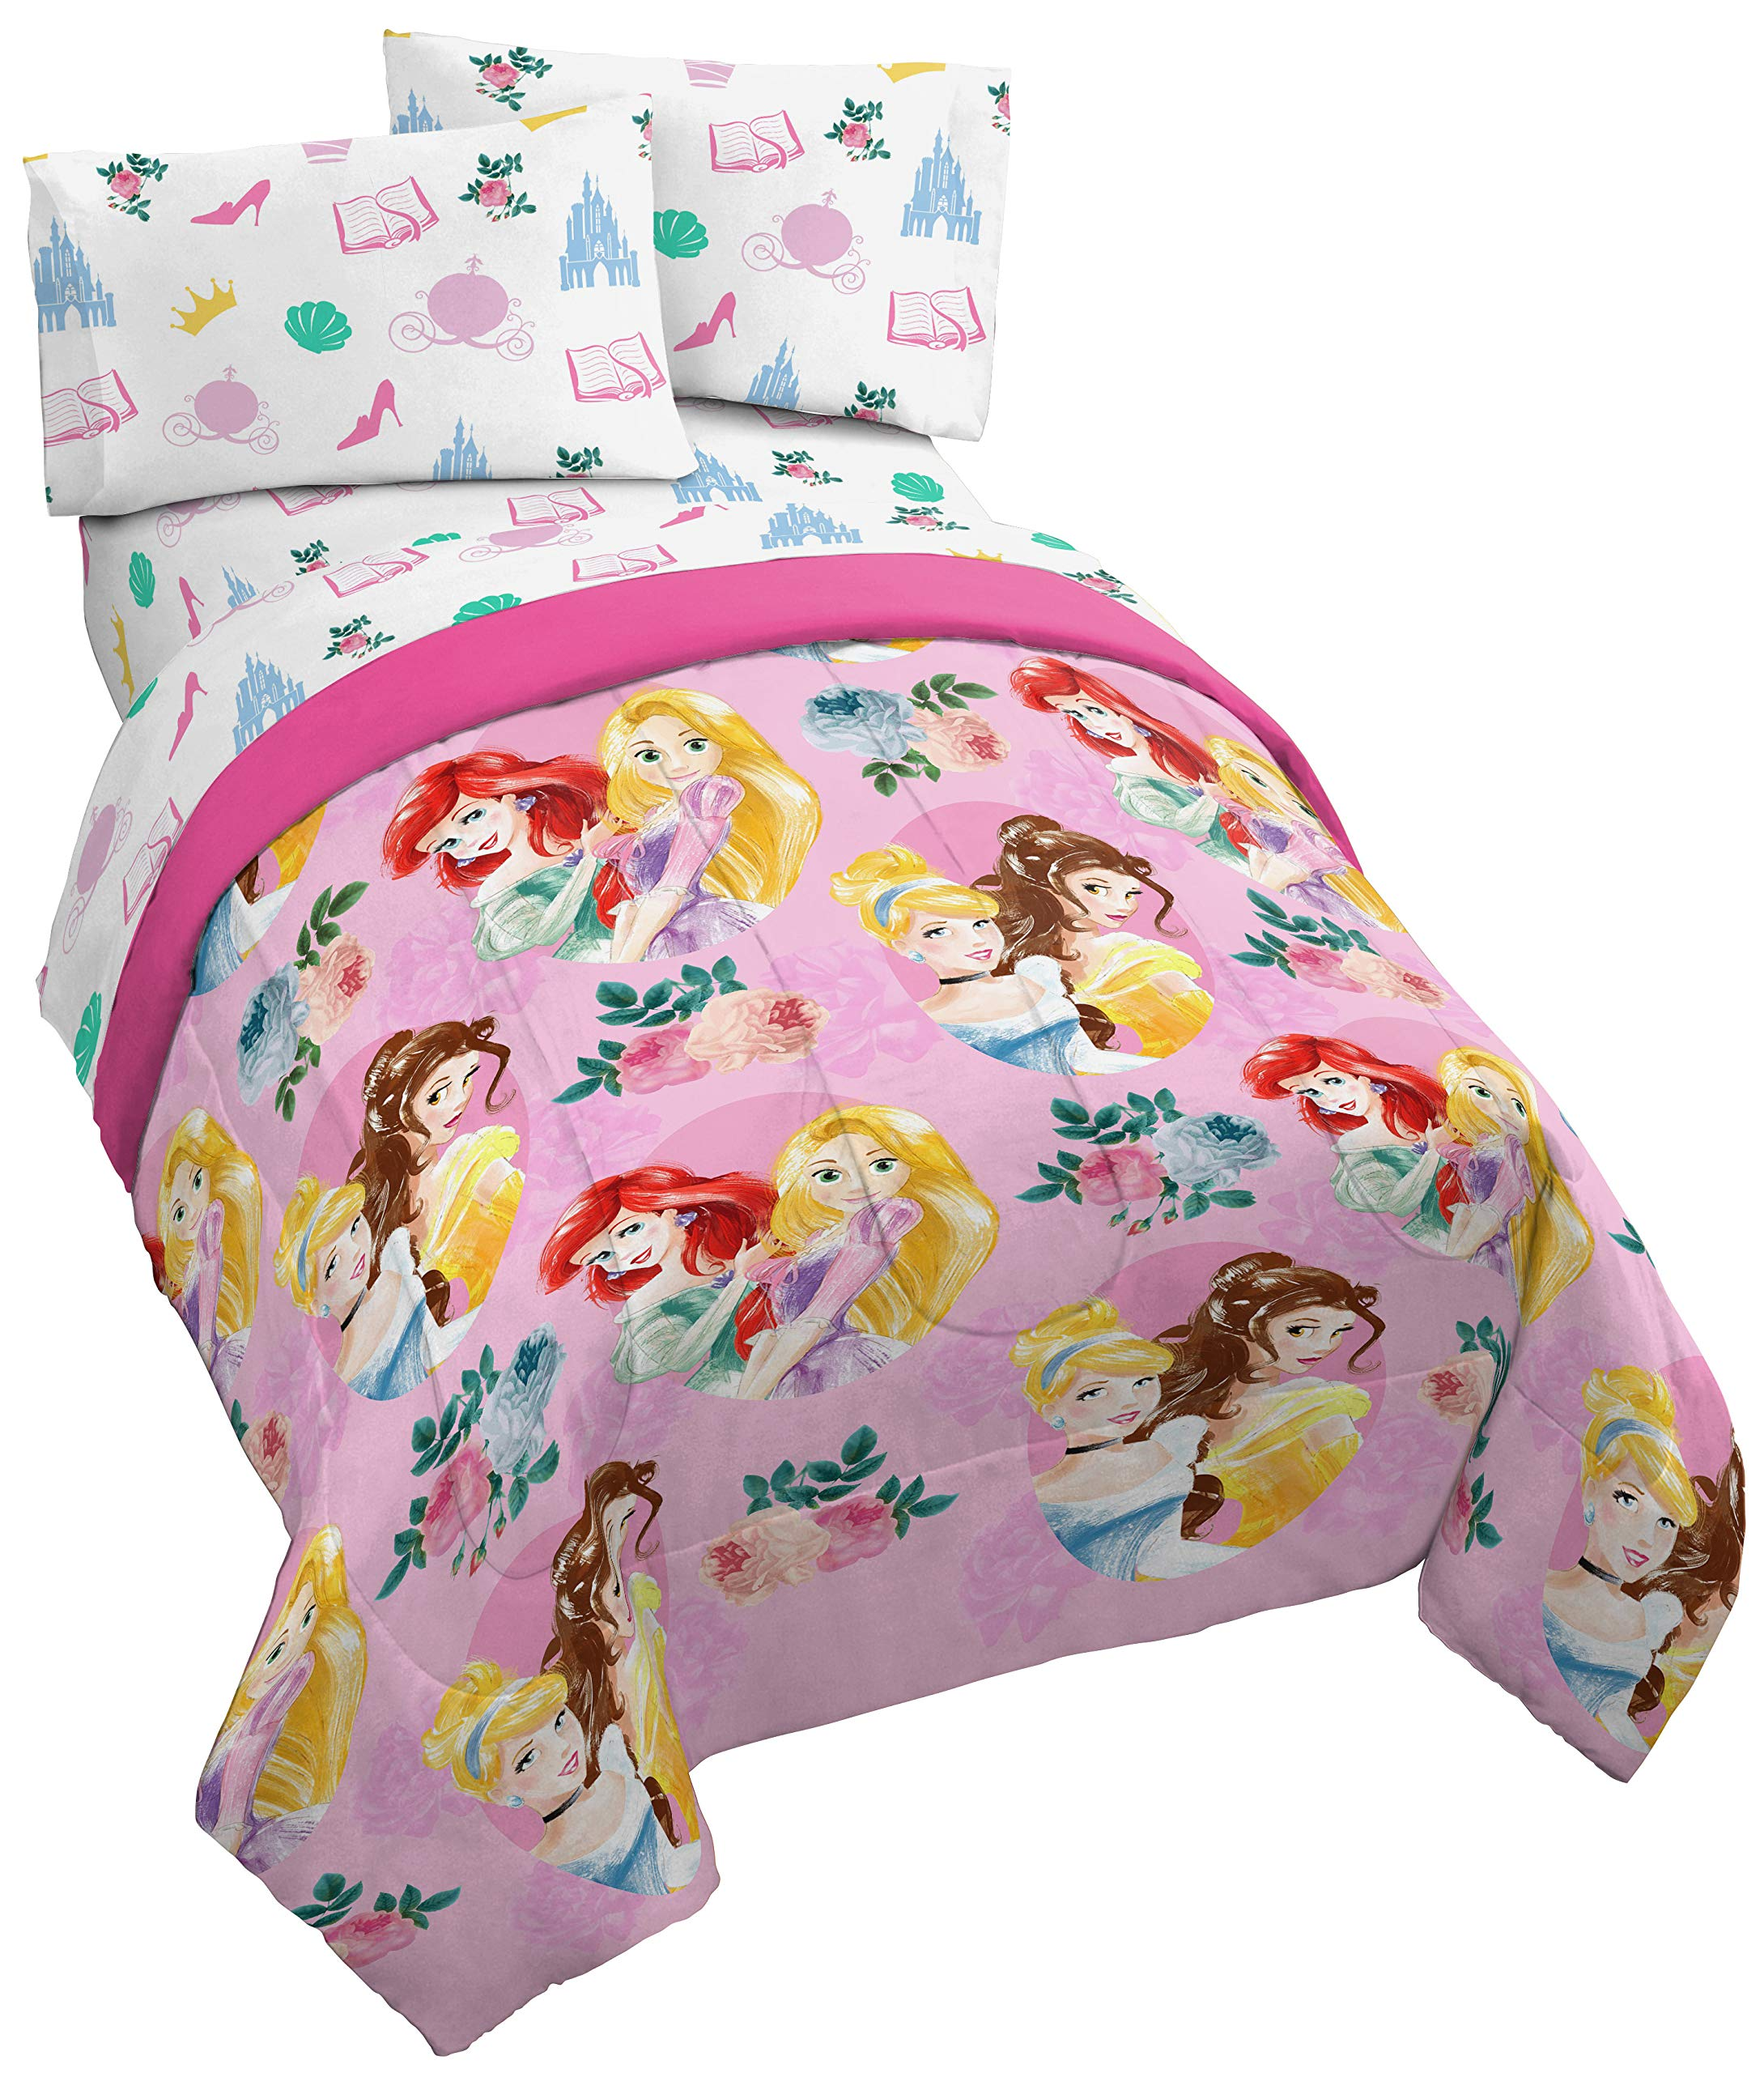 Jay Franco Disney Princess Sassy Full Comforter - Super Soft Kids Reversible Bedding Features Cinderella & Rapunzel - Fade Resistant Polyester Microfiber Fill (Official Disney Product)